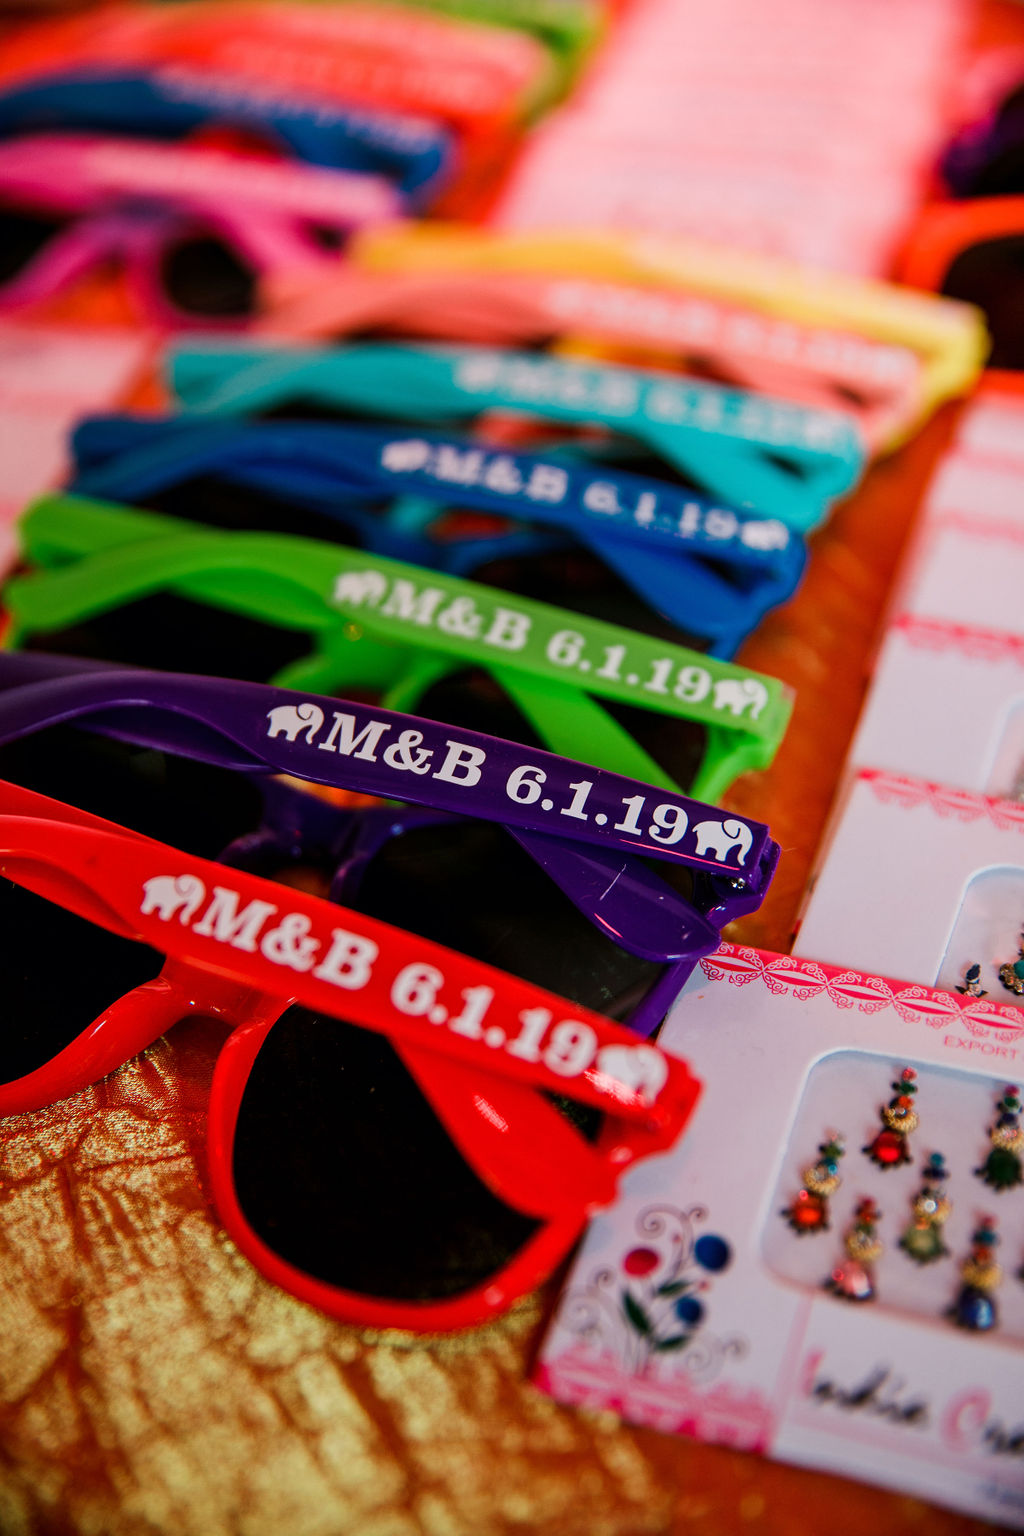 Colorful Sunglasses Wedding Favors: Bollywood Meets Traditional Wedding at The Bridge Building